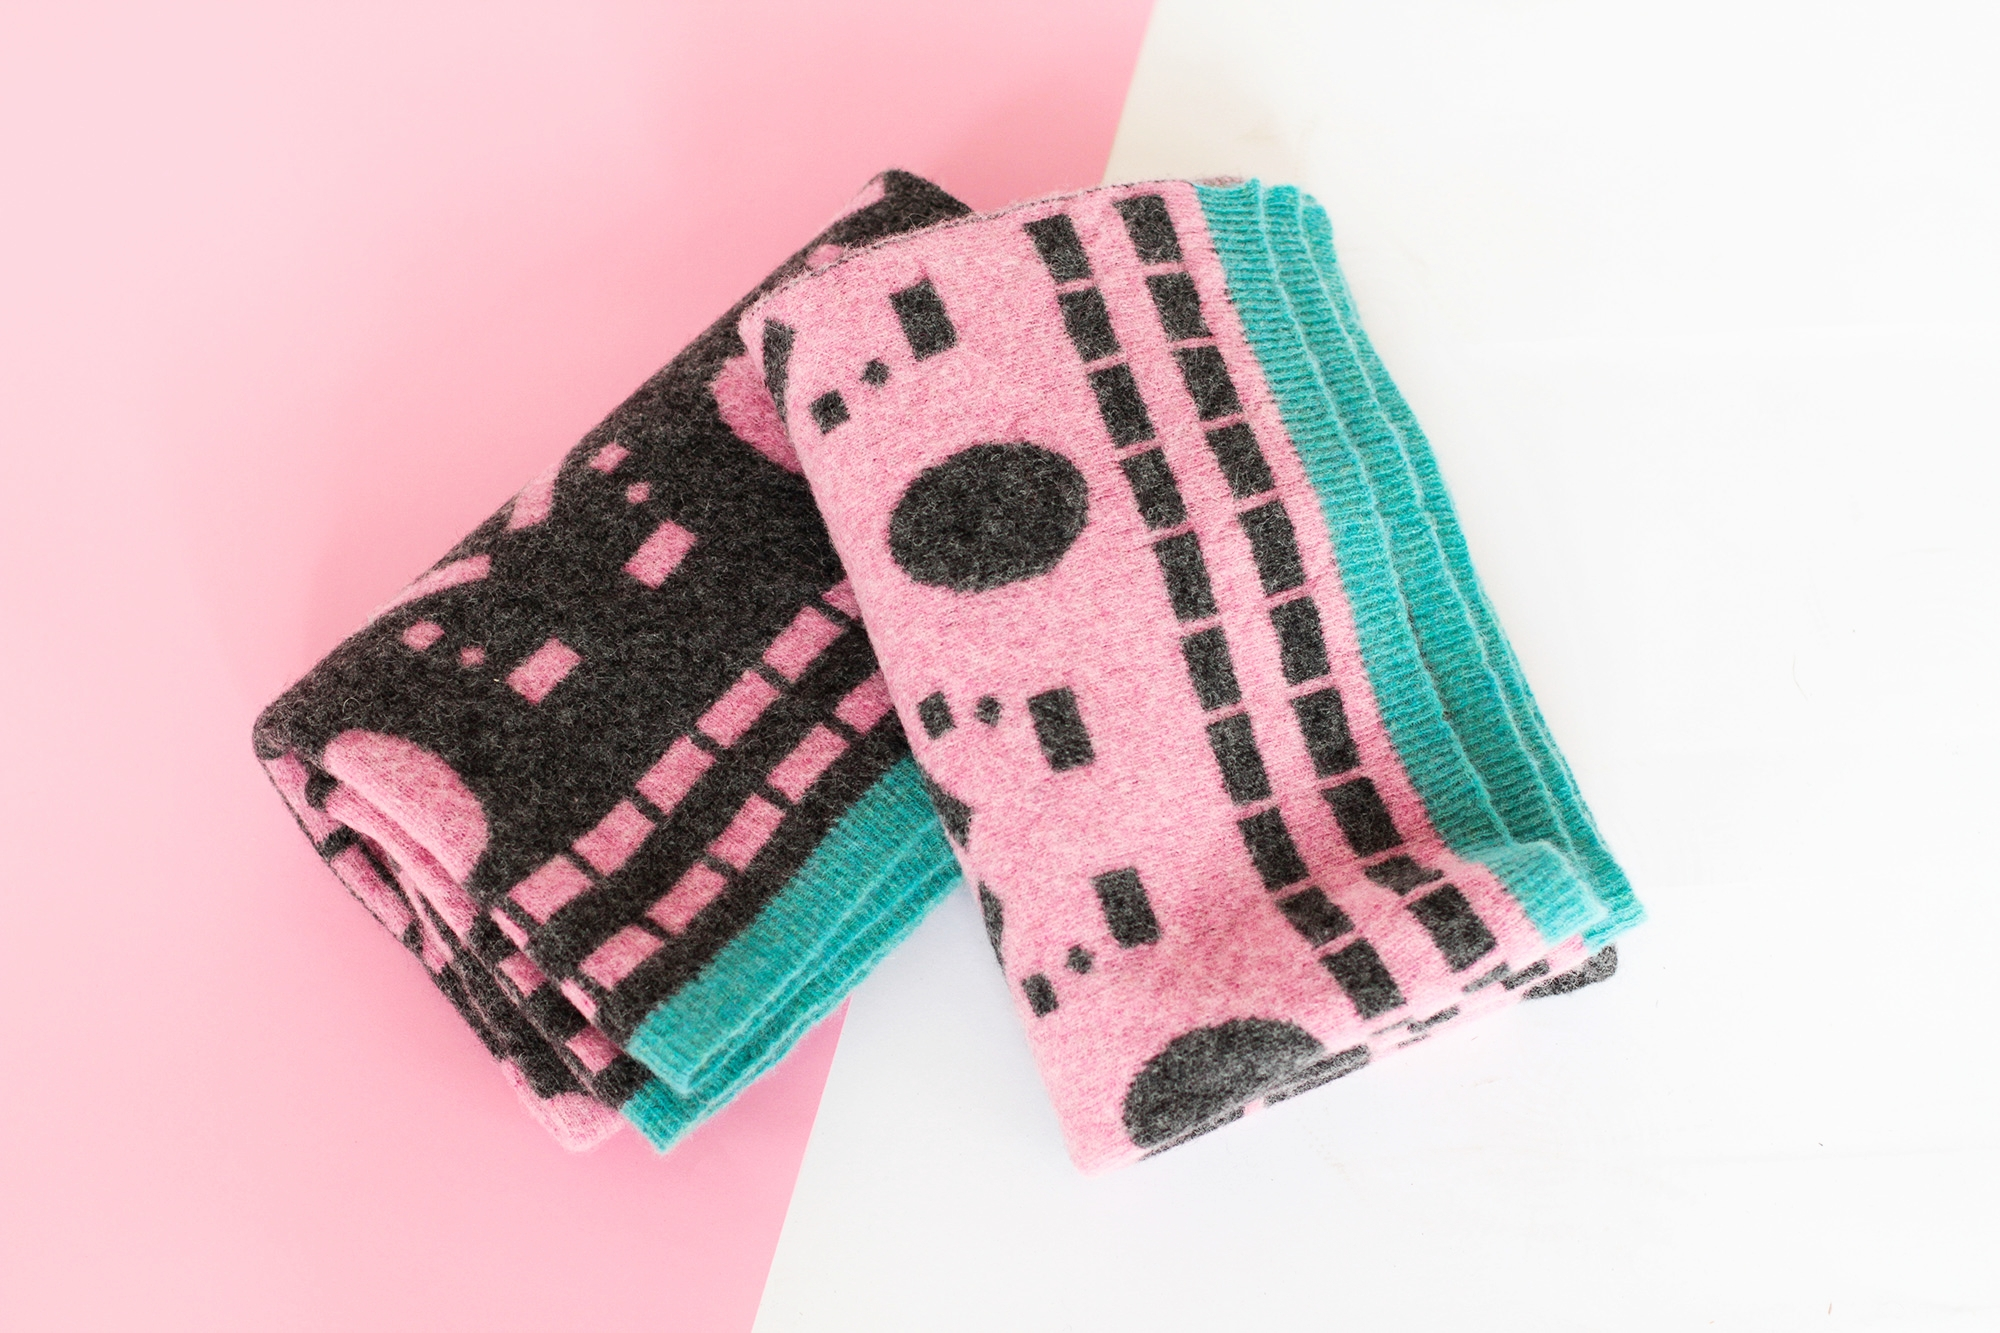 BLANKETS - SHOP HERE